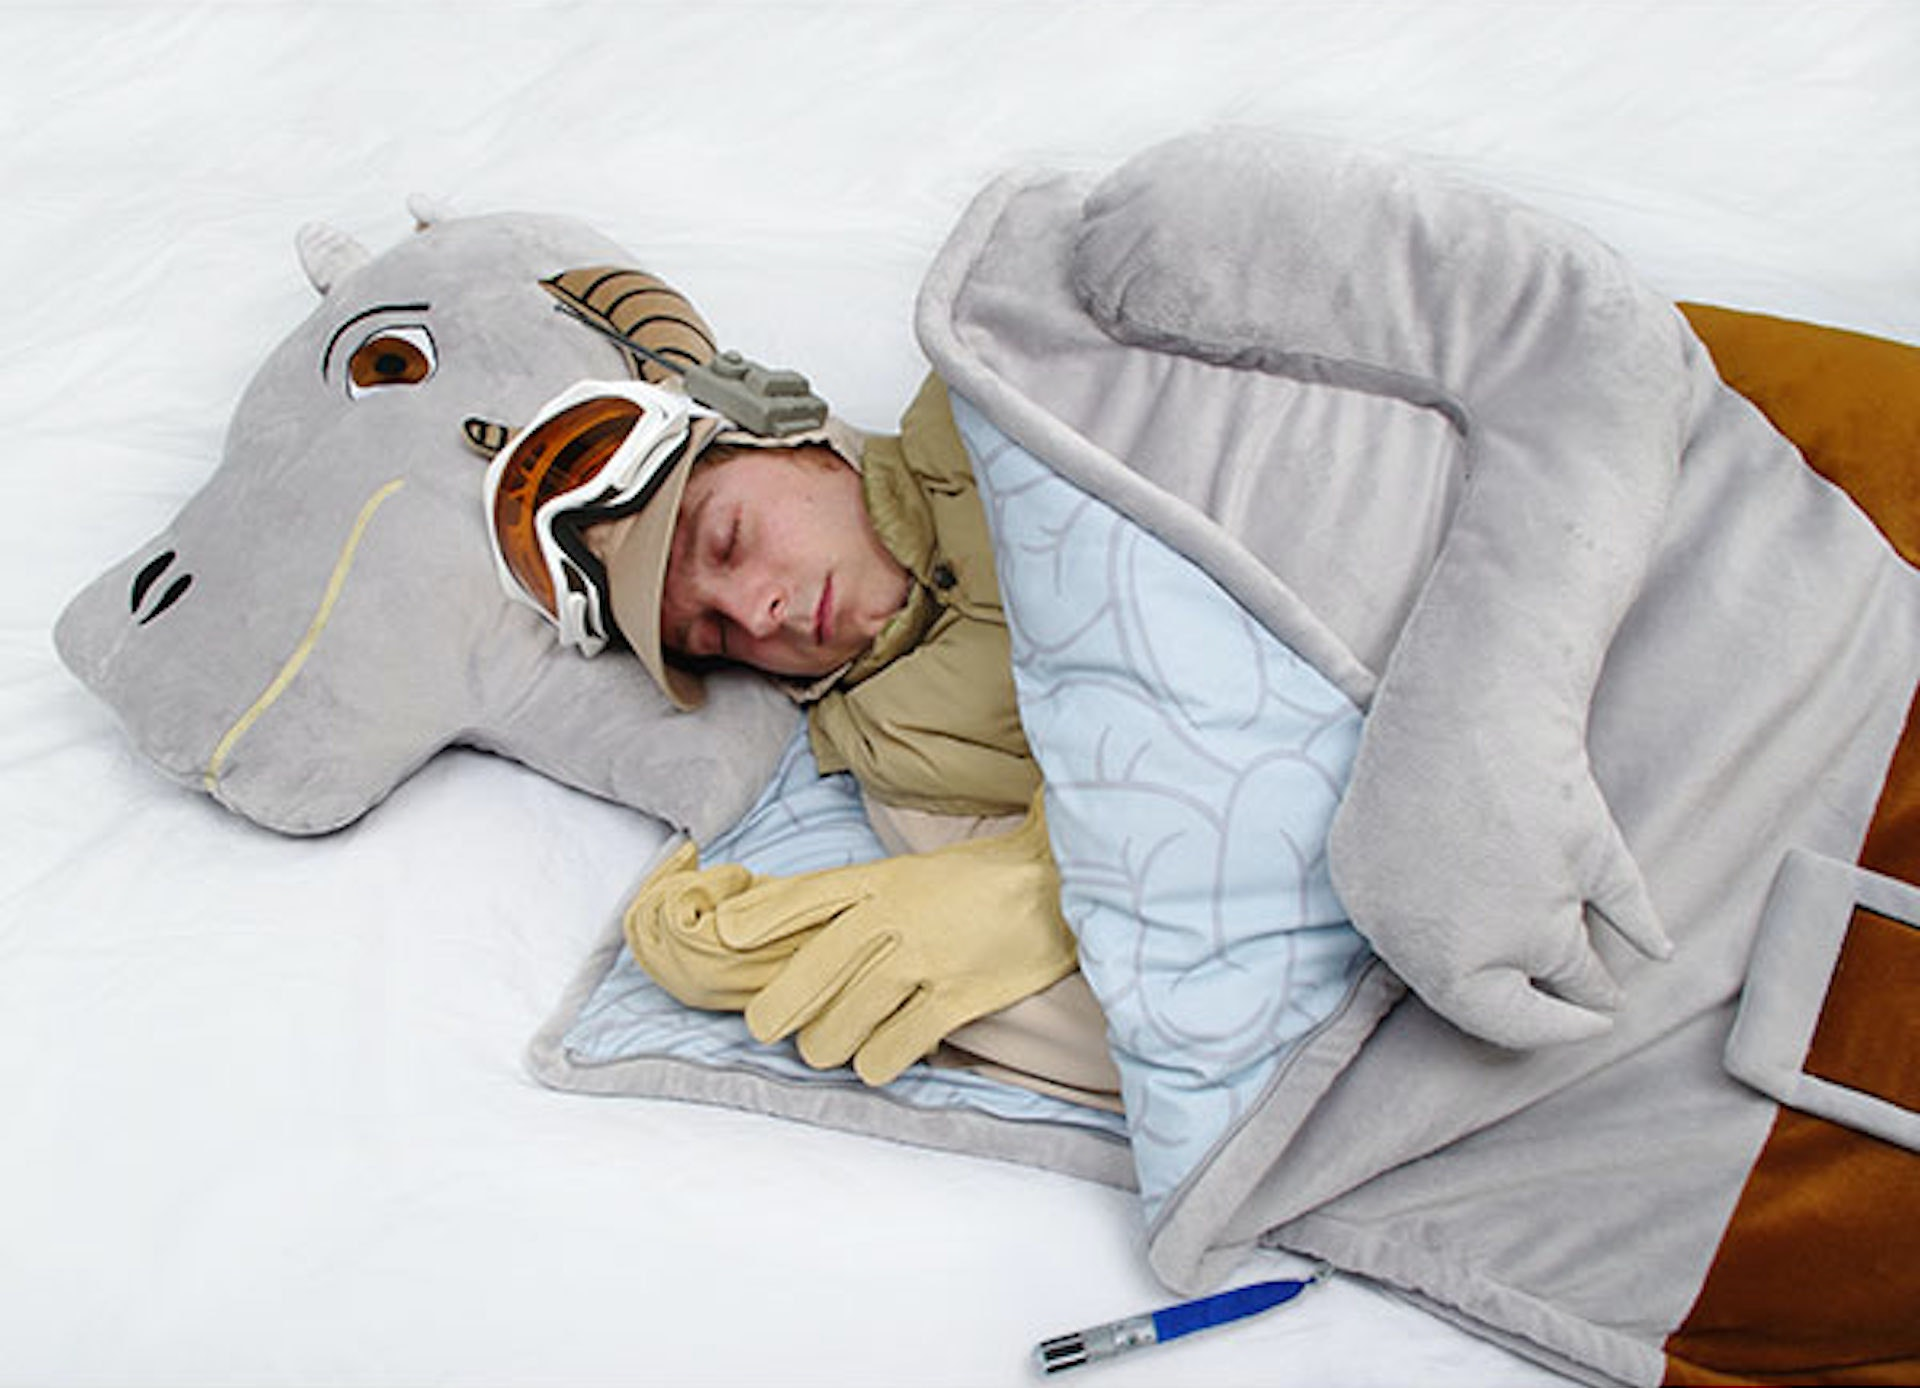 A sleeping bag that'll keep you warm, even on Hoth